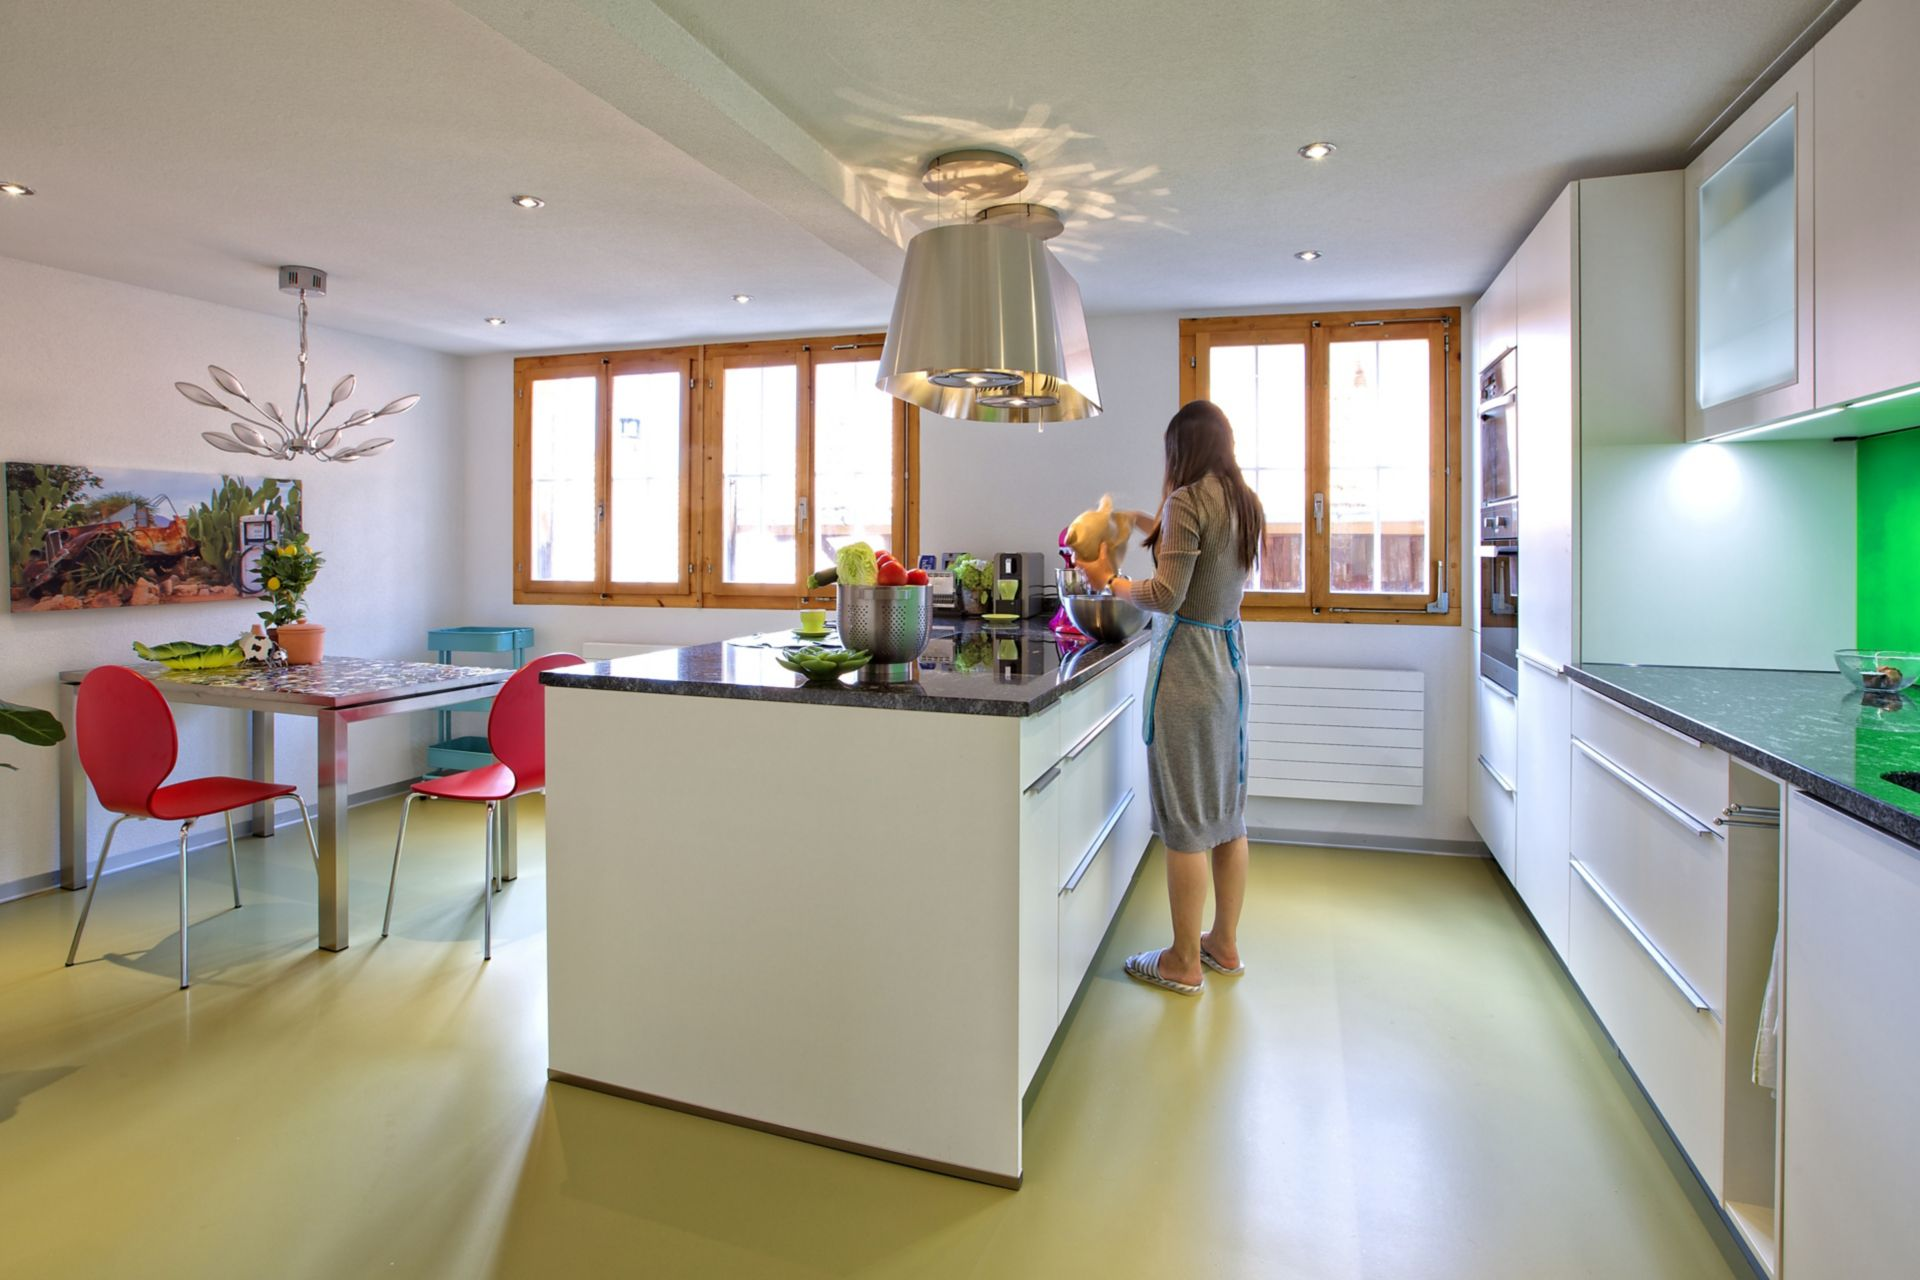 Sika ComfortFloor® green floor in kitchen with woman preparing food